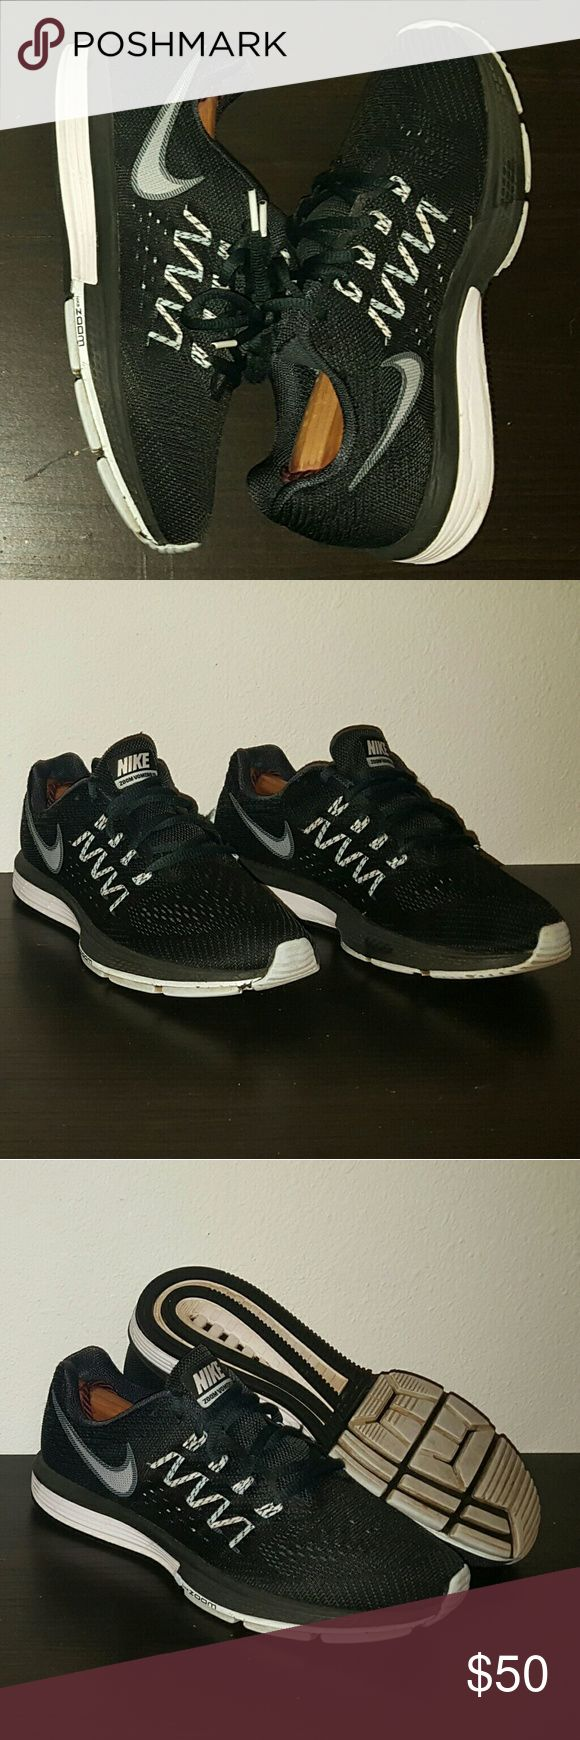 Women's Nike vomero 10 Women's Nike vomero 10 size 7 good condition Nike Shoes Athletic Shoes